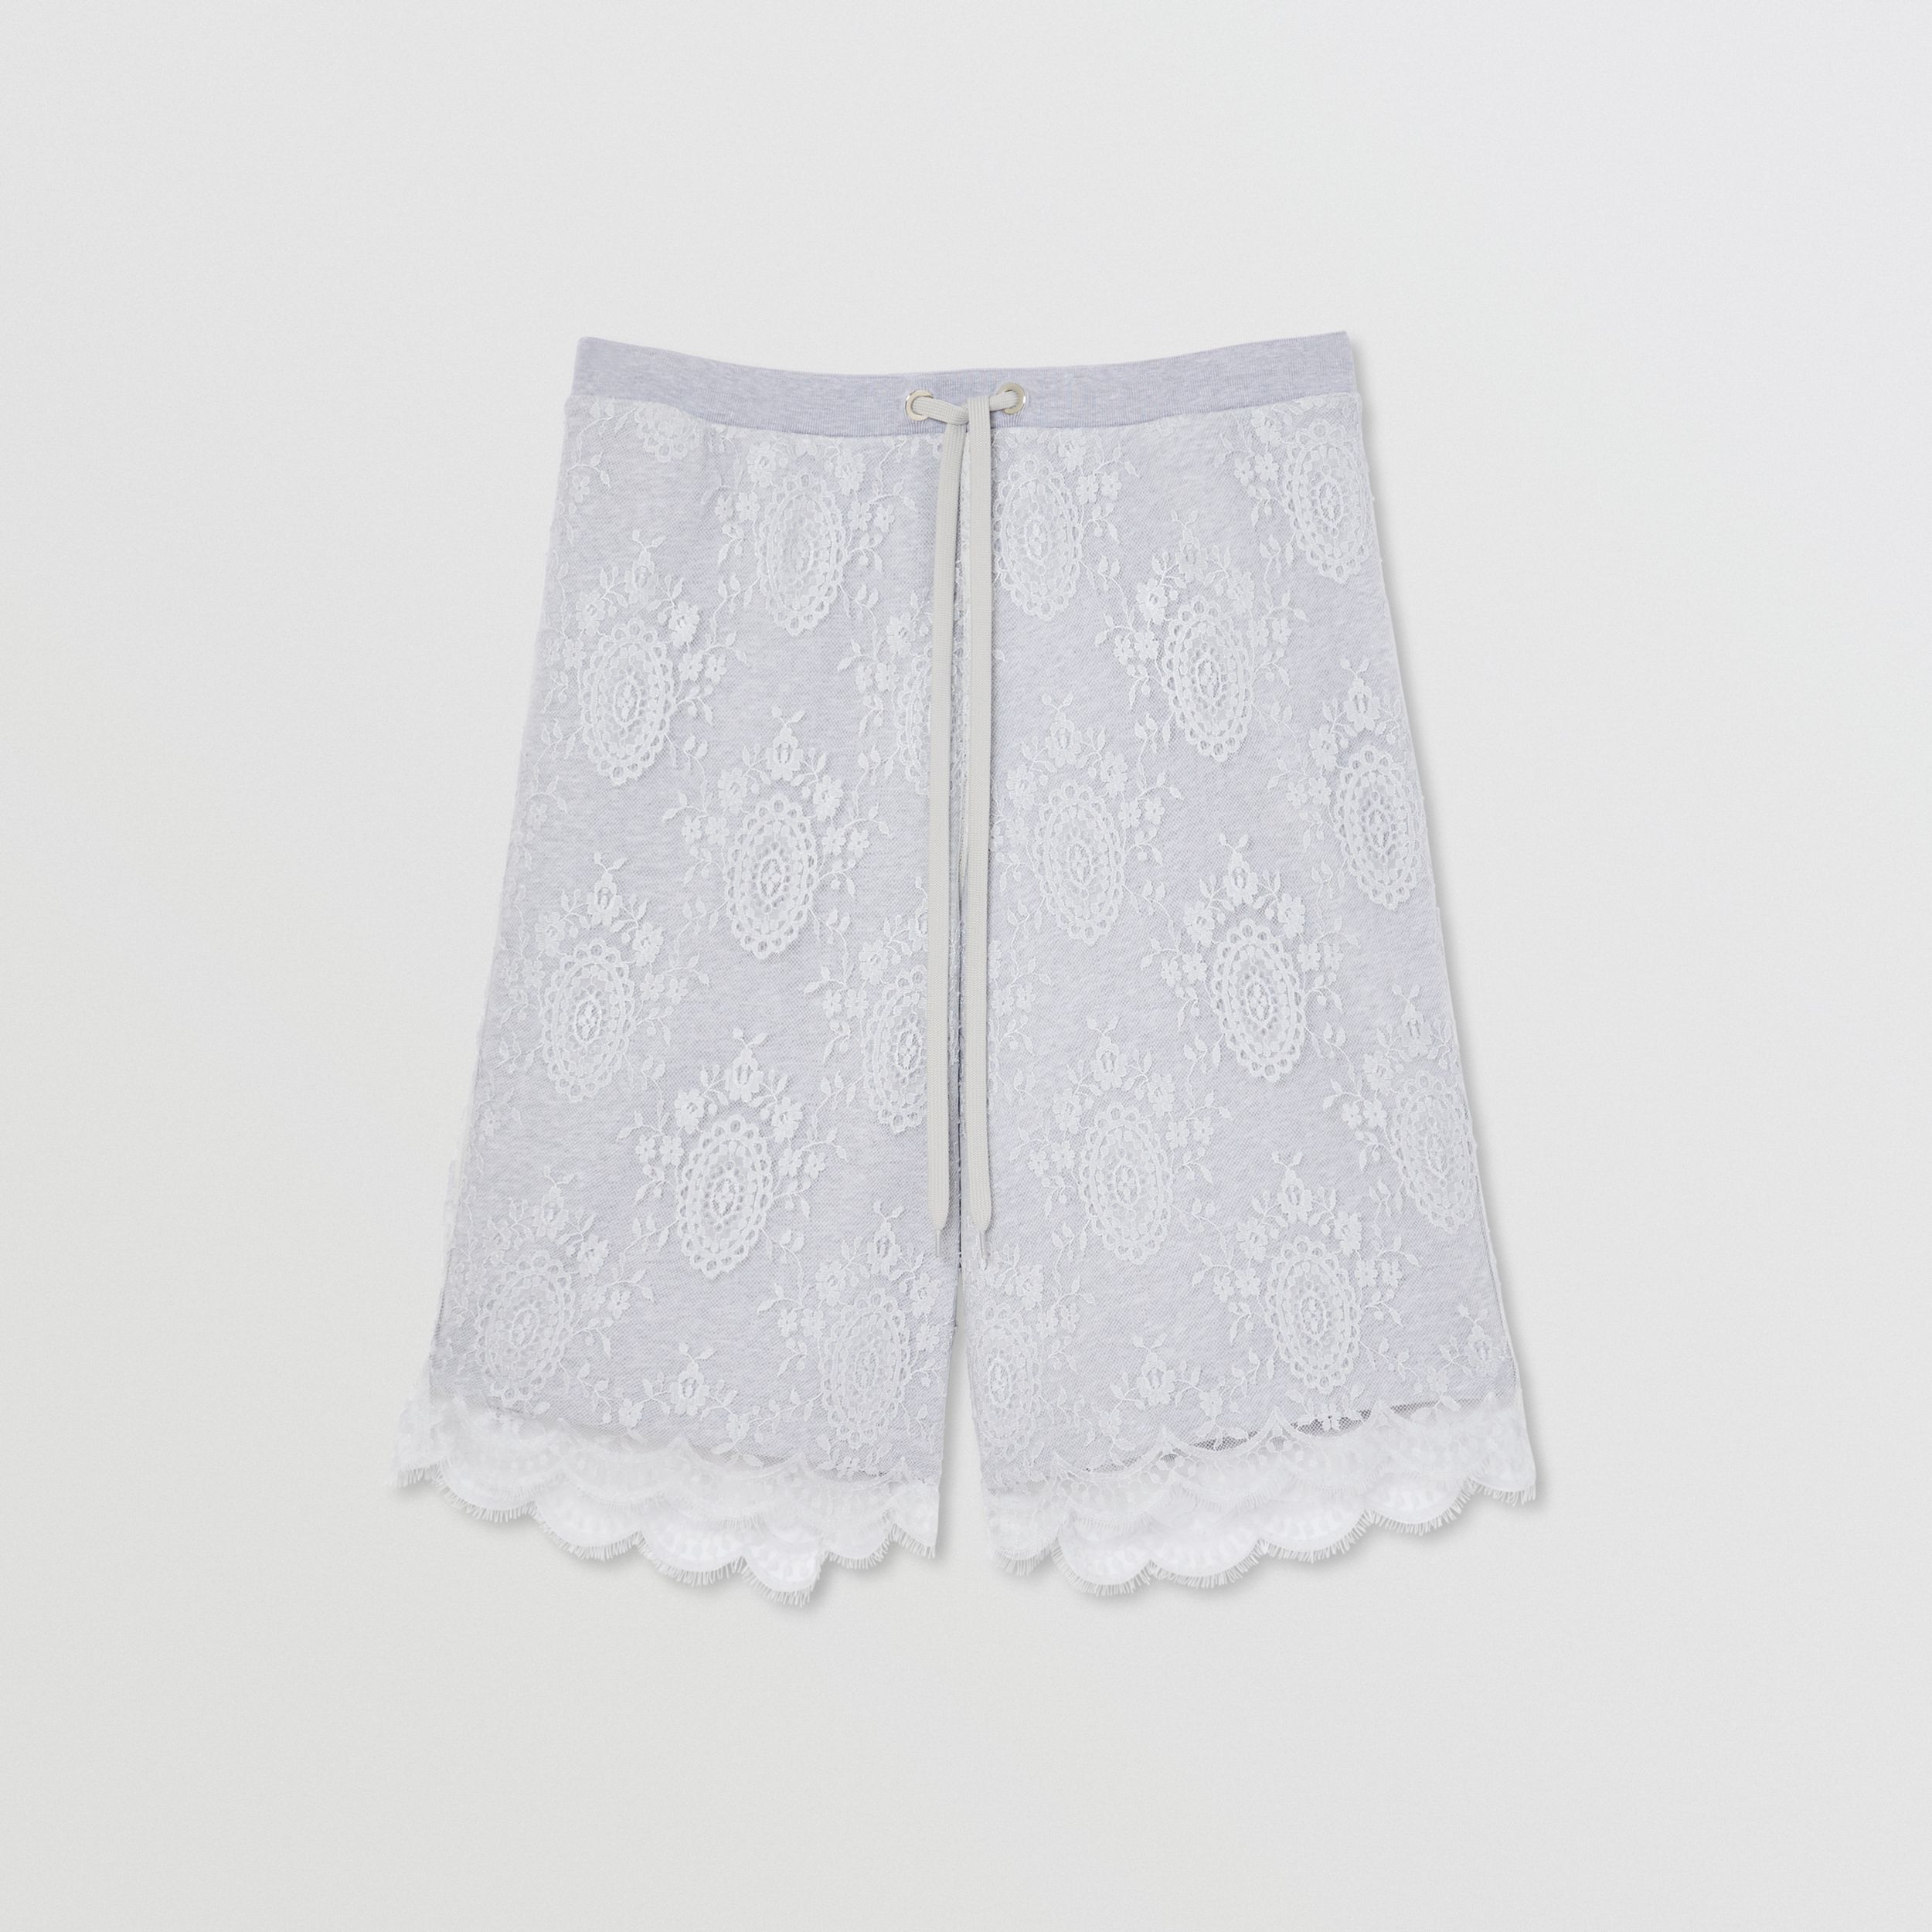 Chantilly Lace and Cotton Drawcord Shorts in Light Pebble Grey - Men | Burberry - 4